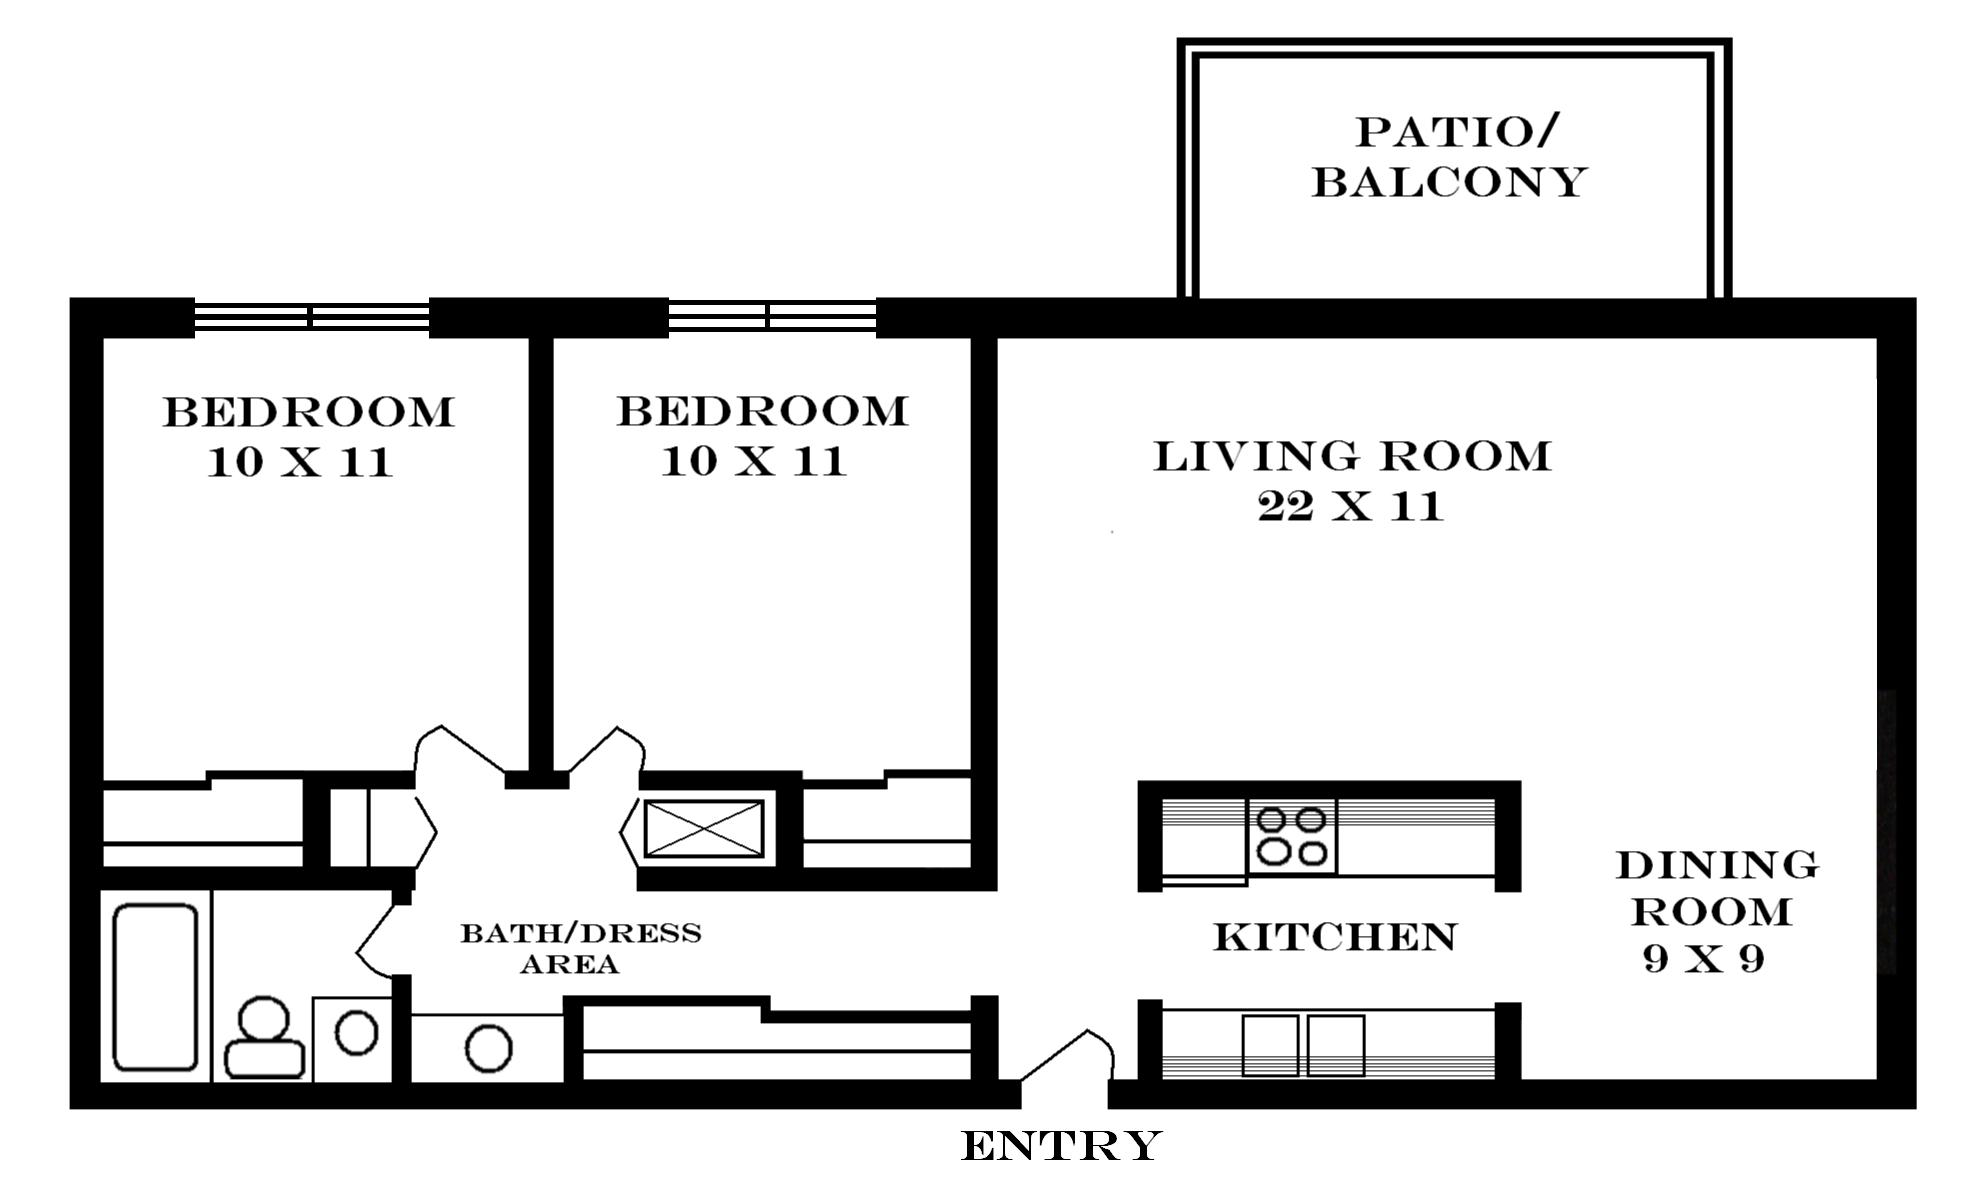 2 bedroom mobile home floor plans flodingresort - Simple Floor Plans 2